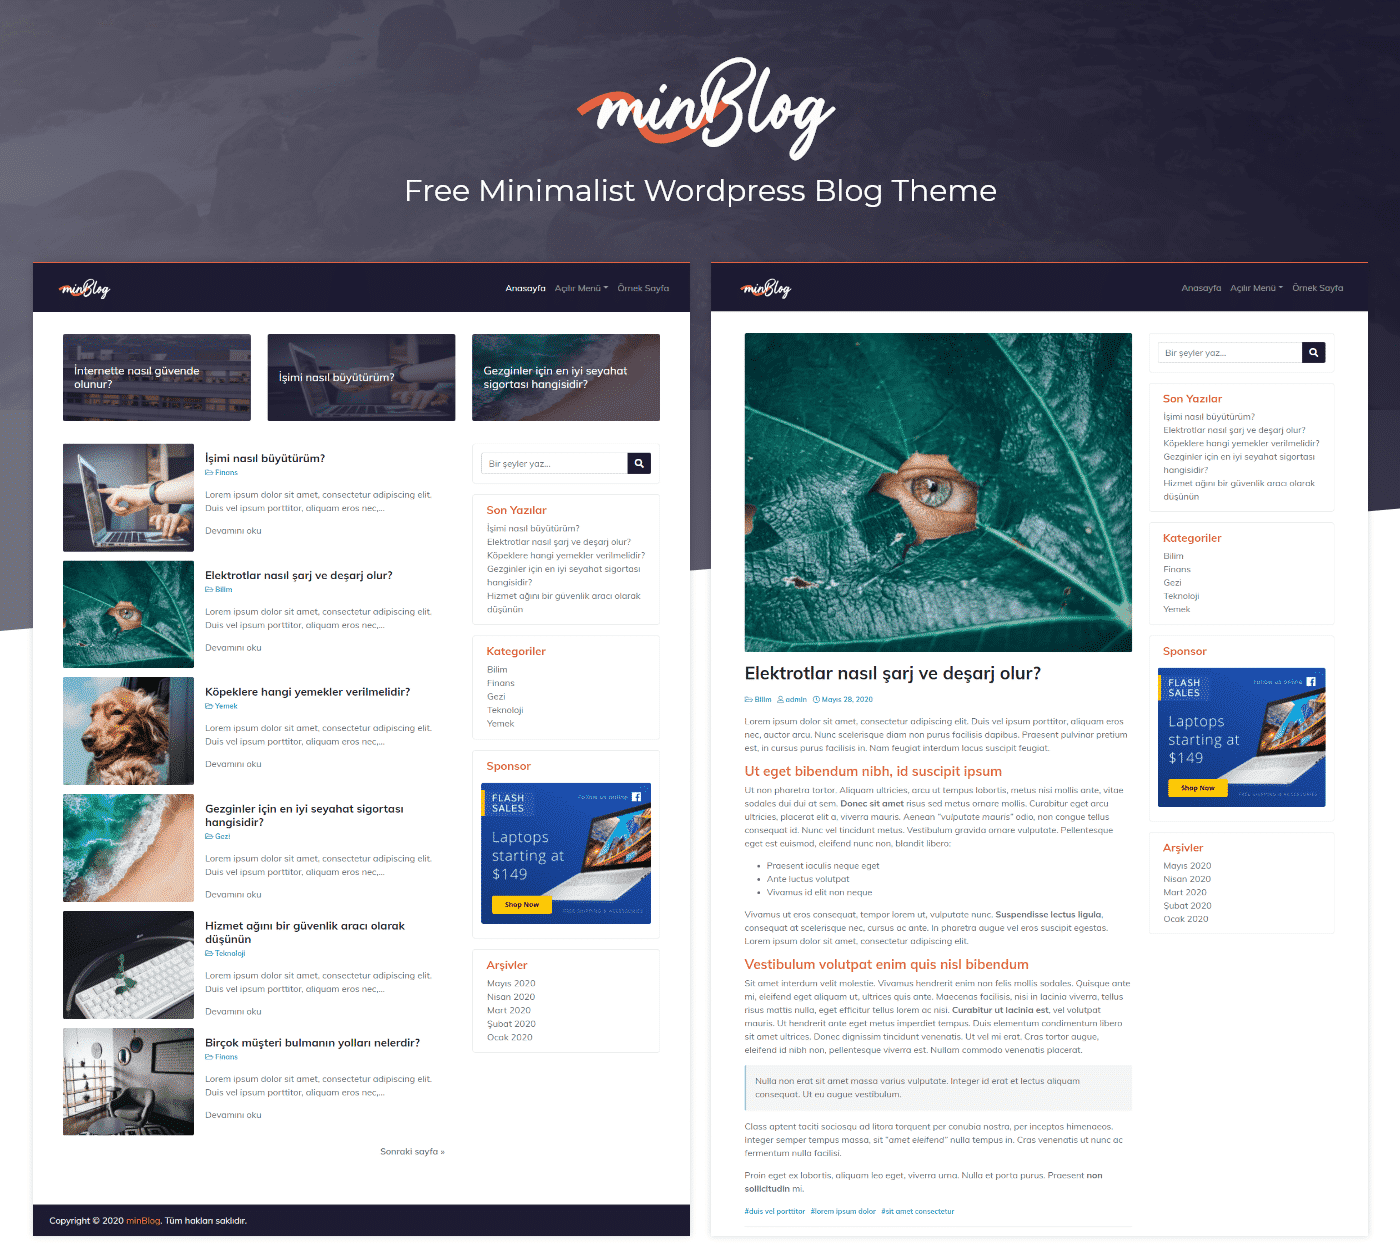 minBlog – Free Minimalist WordPress Blog Theme